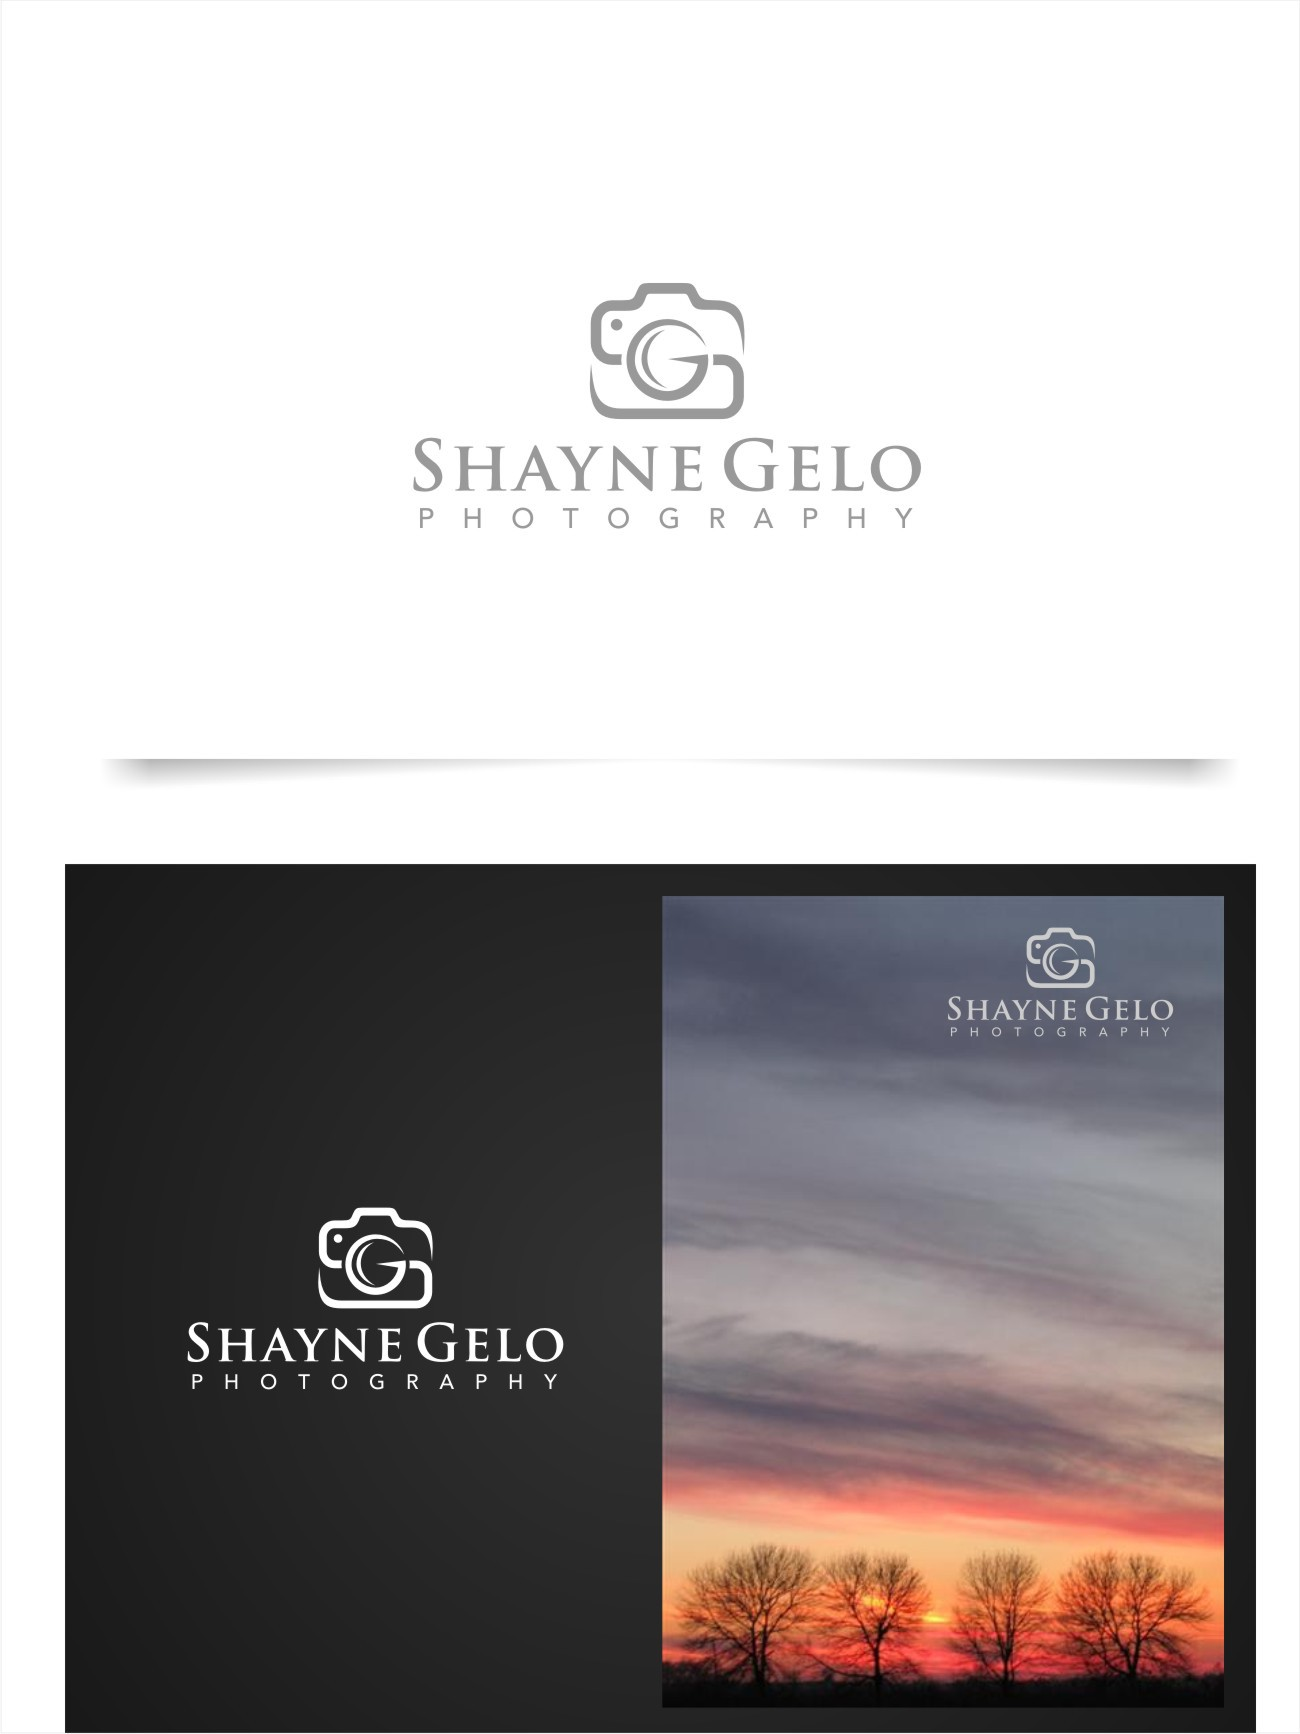 New logo wanted for Shayne Gelo Photography